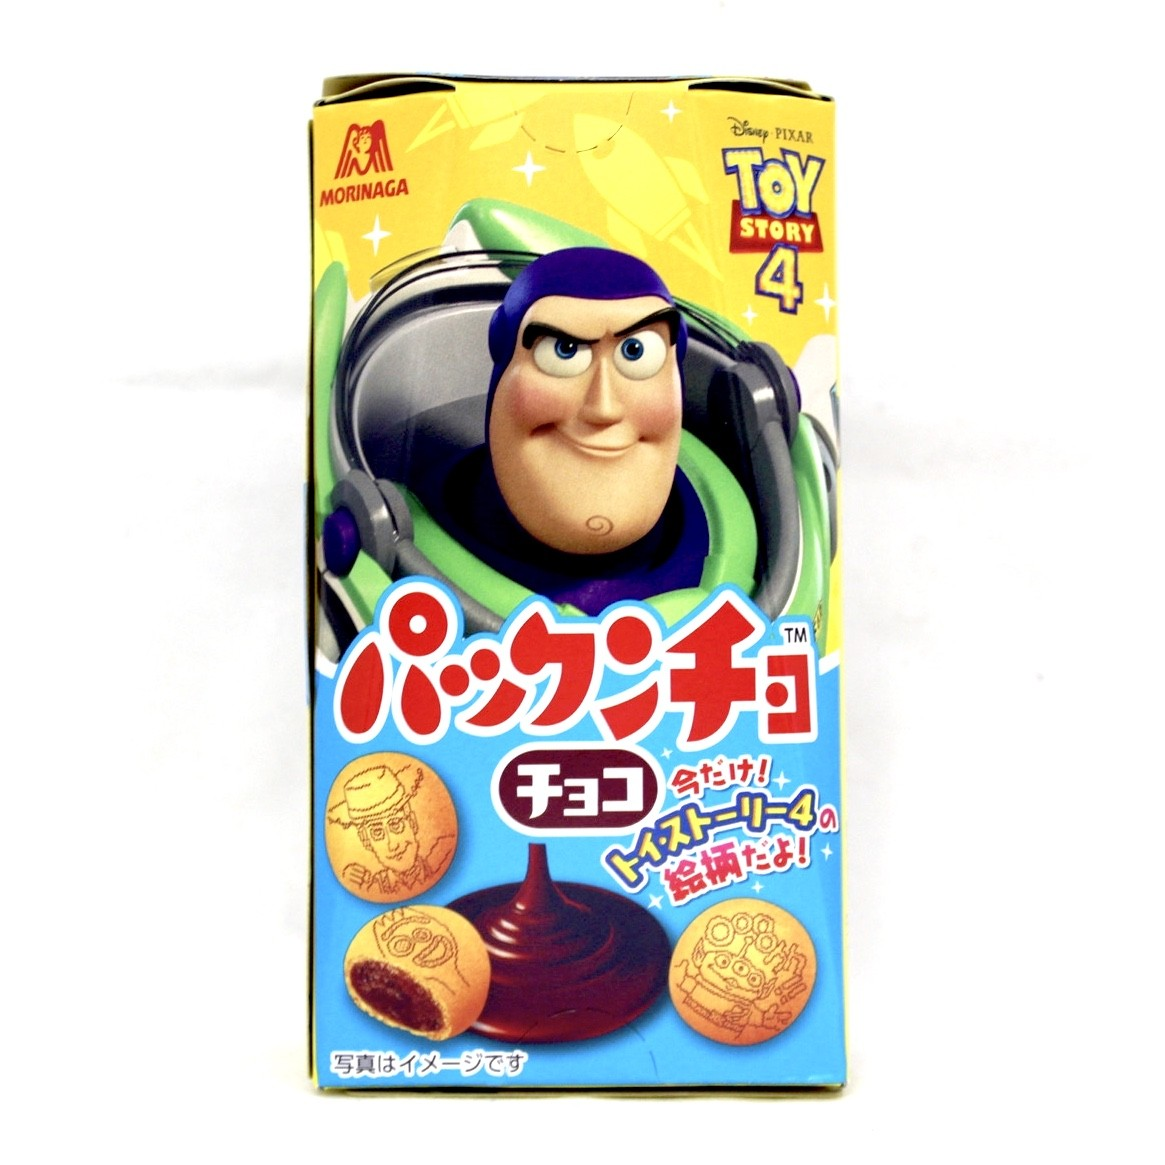 MORINAGA PACKN CHO DISNEY CHOCOLATE 47g